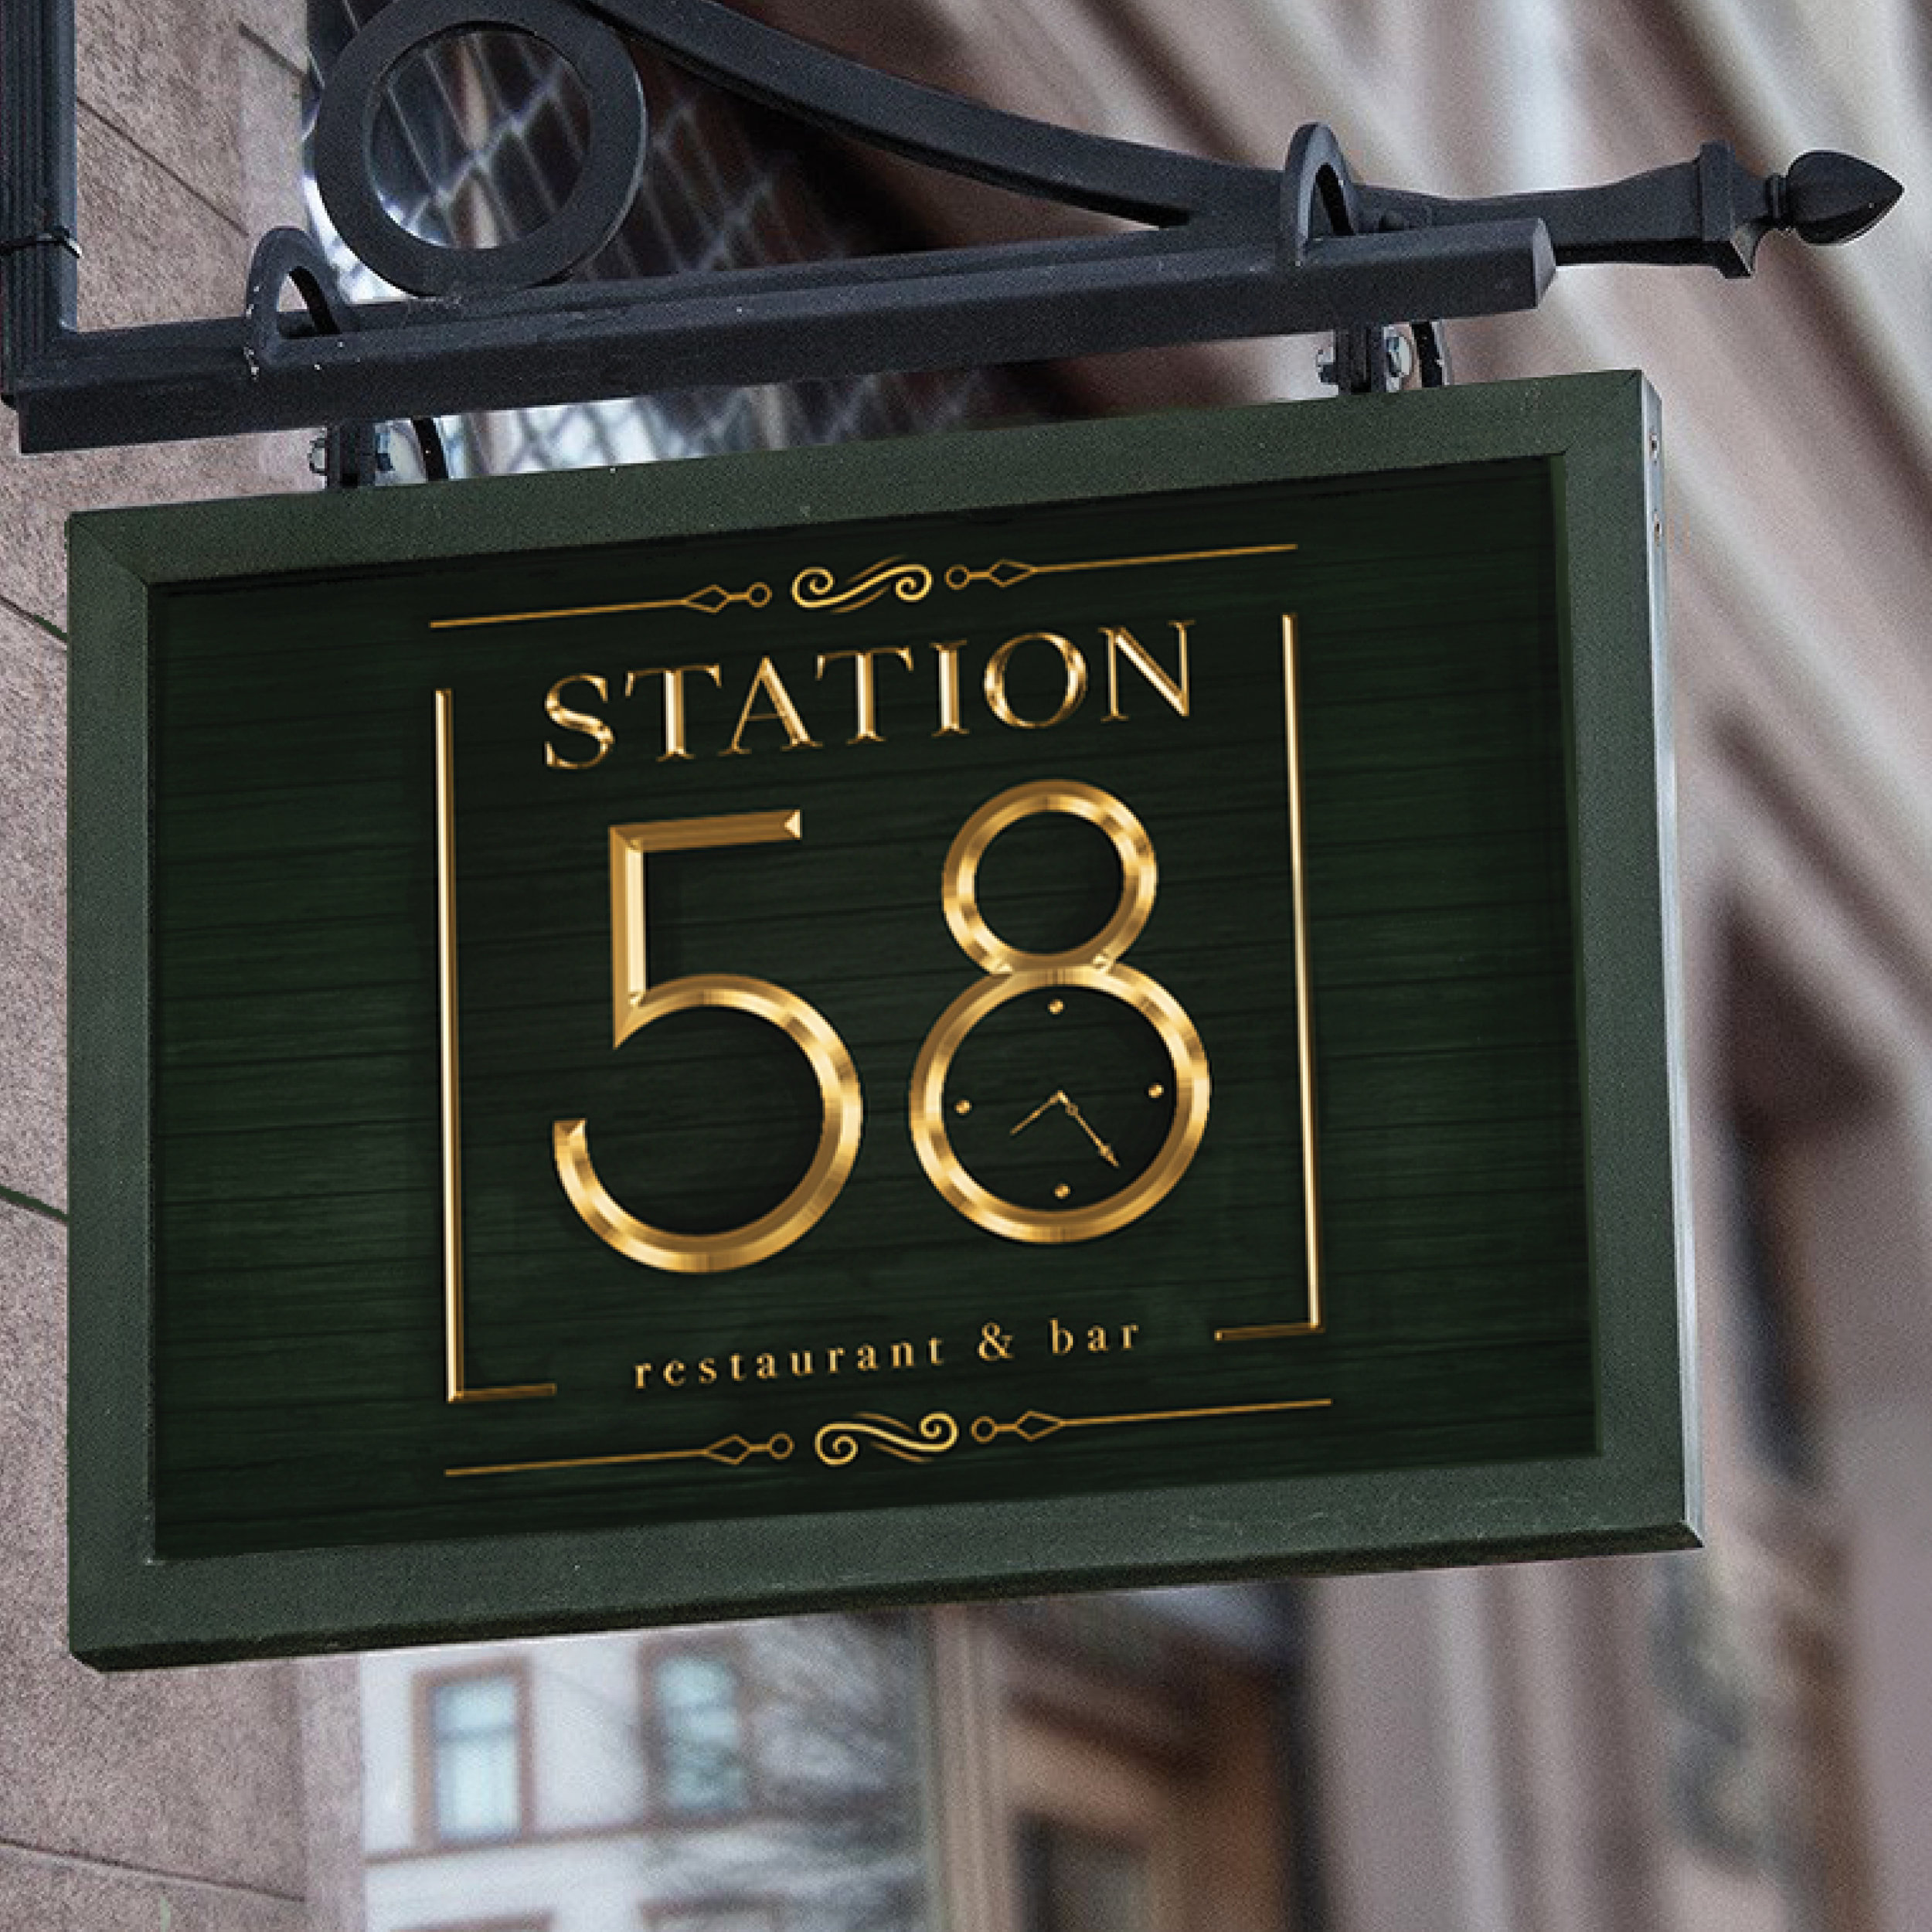 Station 58 Restaurant & Bar | 2018